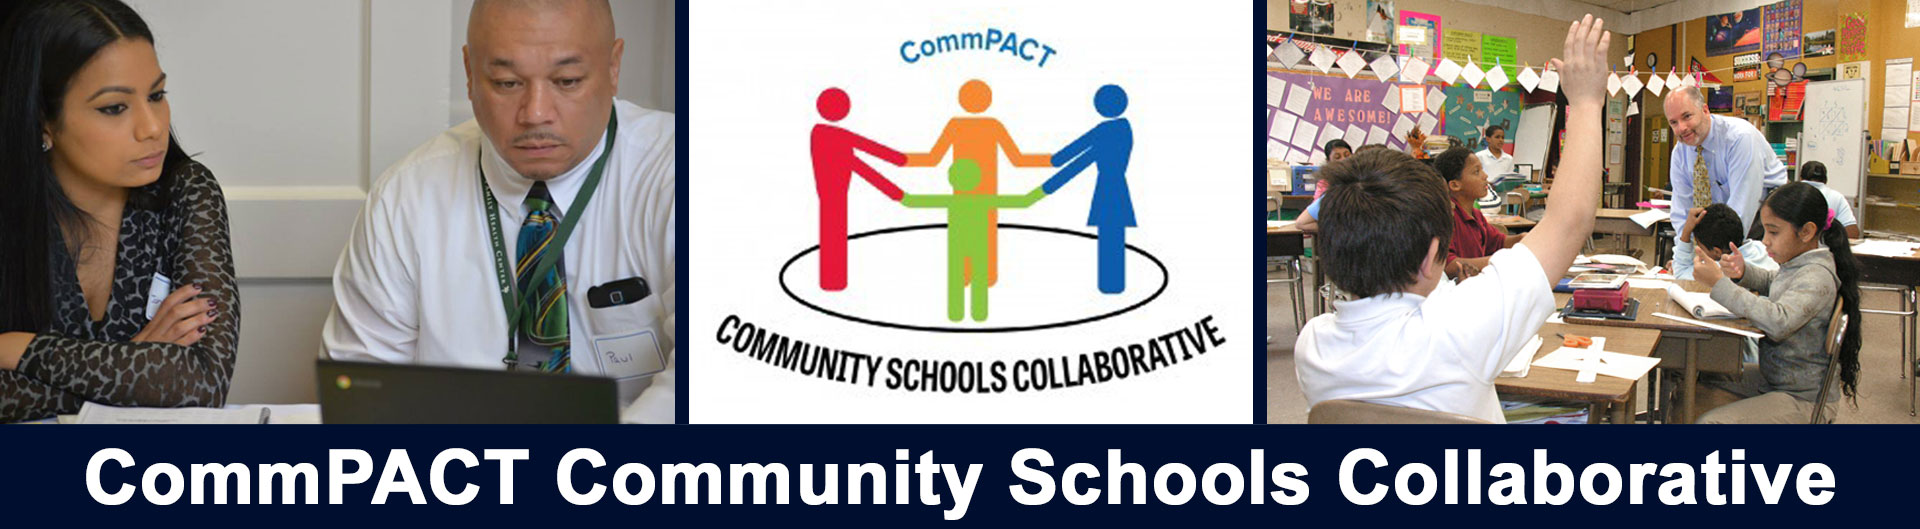 Homepage banner displaying CommPACT community members in action + CommPACT logo